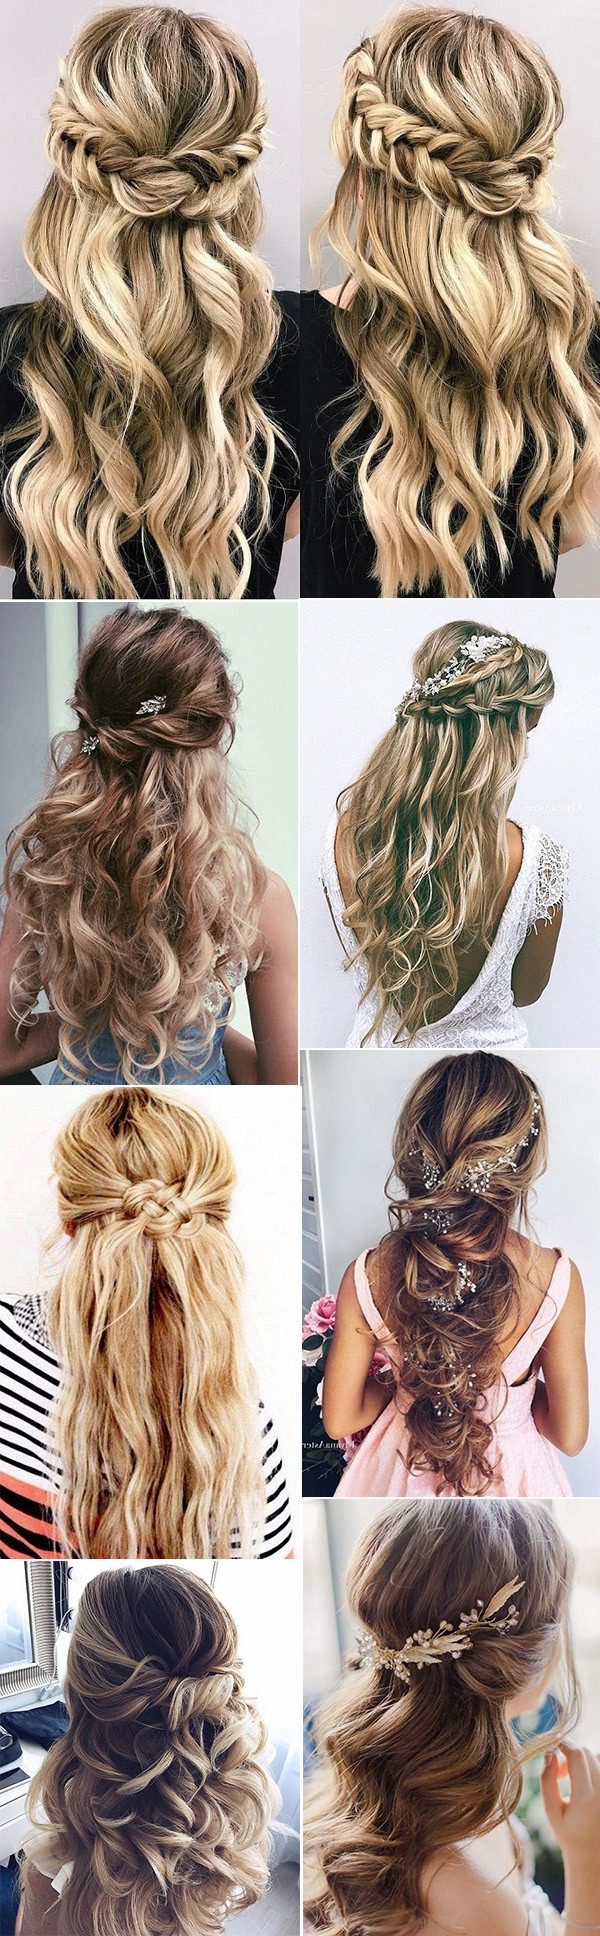 Wedding Hairstyle : Half Up Down Do Braid Curls Wedding Hairstyles With Best And Newest Curly Half Updo With Ponytail Braids (Gallery 11 of 20)